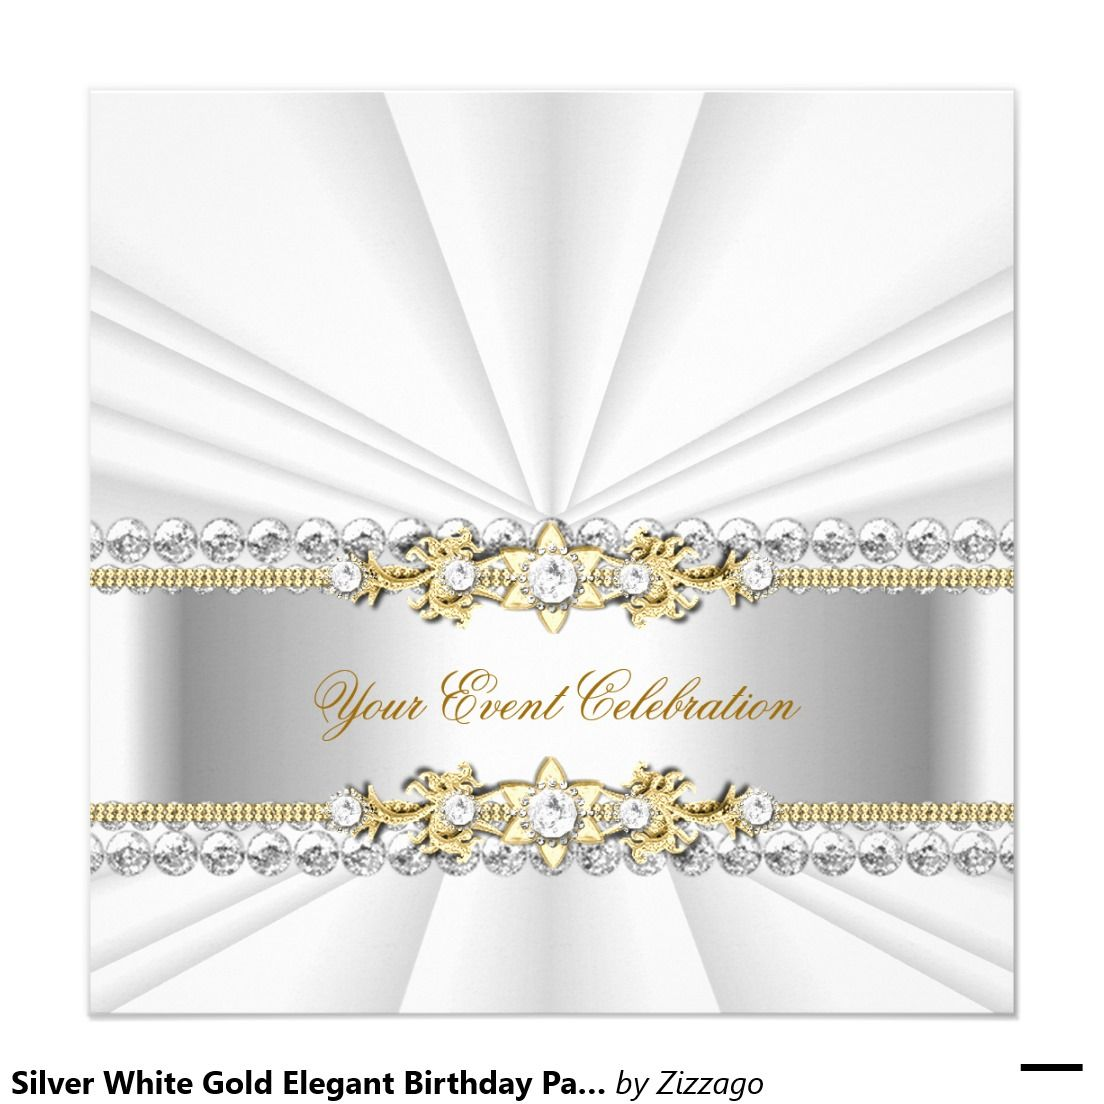 Silver White Gold Elegant Birthday Party Card | Elegant birthday ...